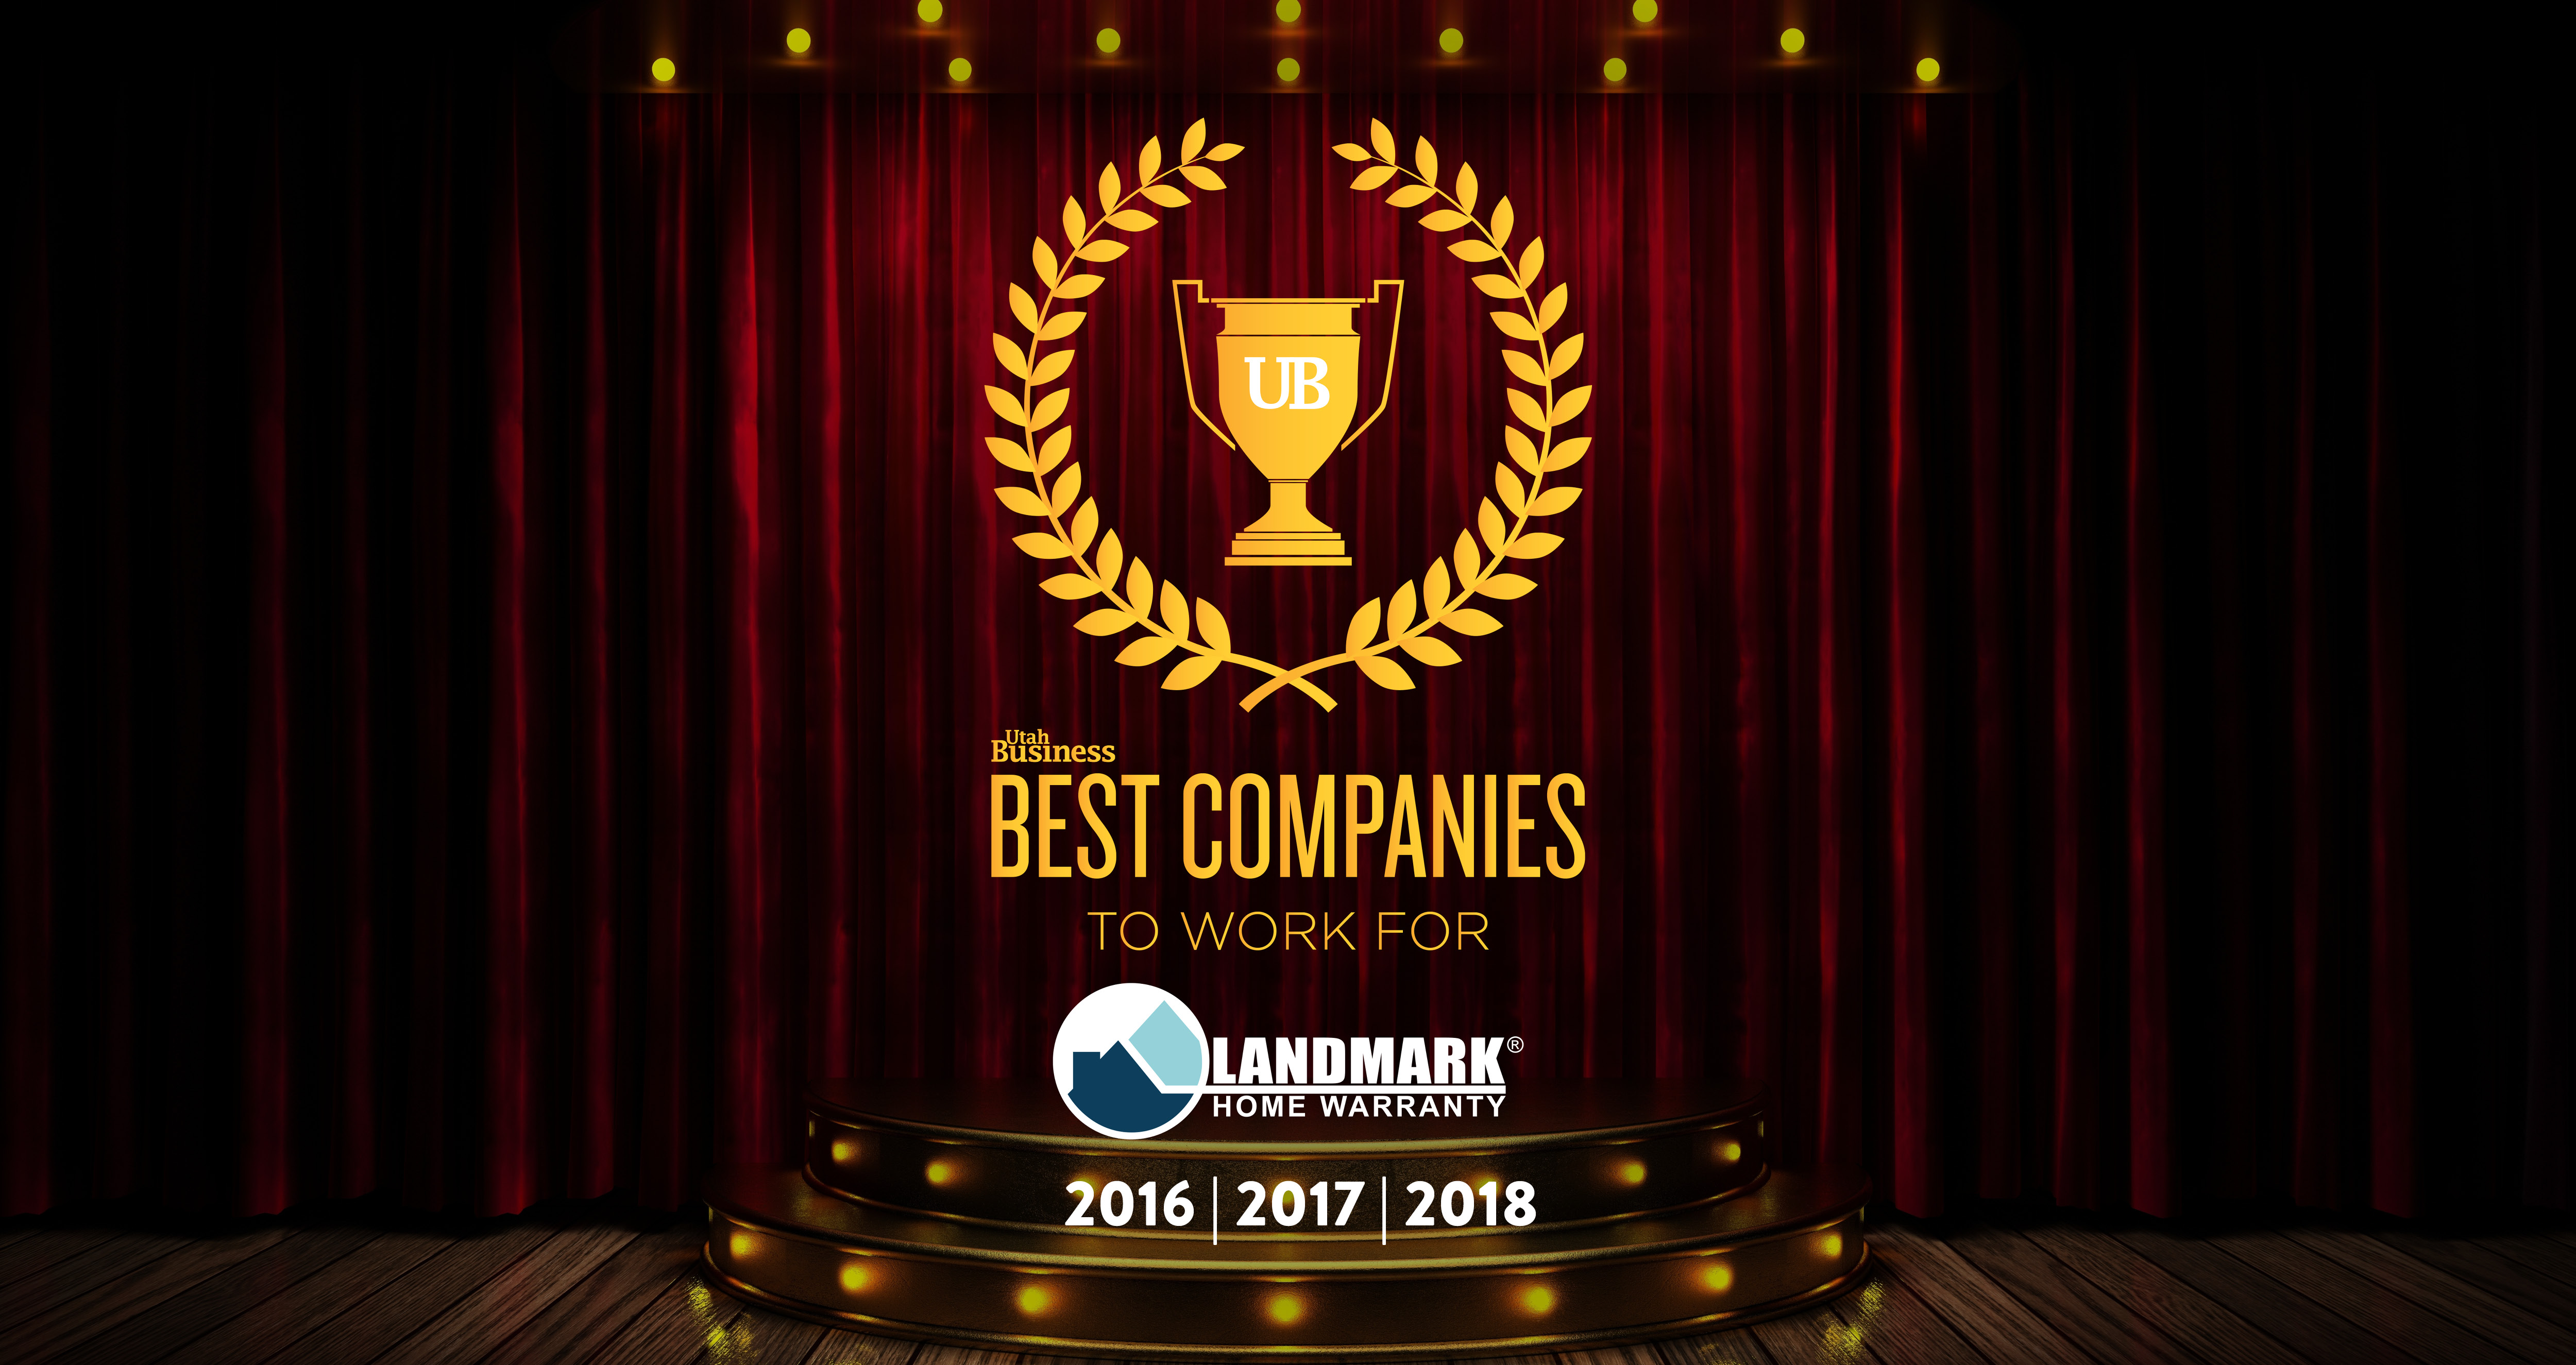 Landmark Home Warranty was named one of the best places to work in Utah for 2018.